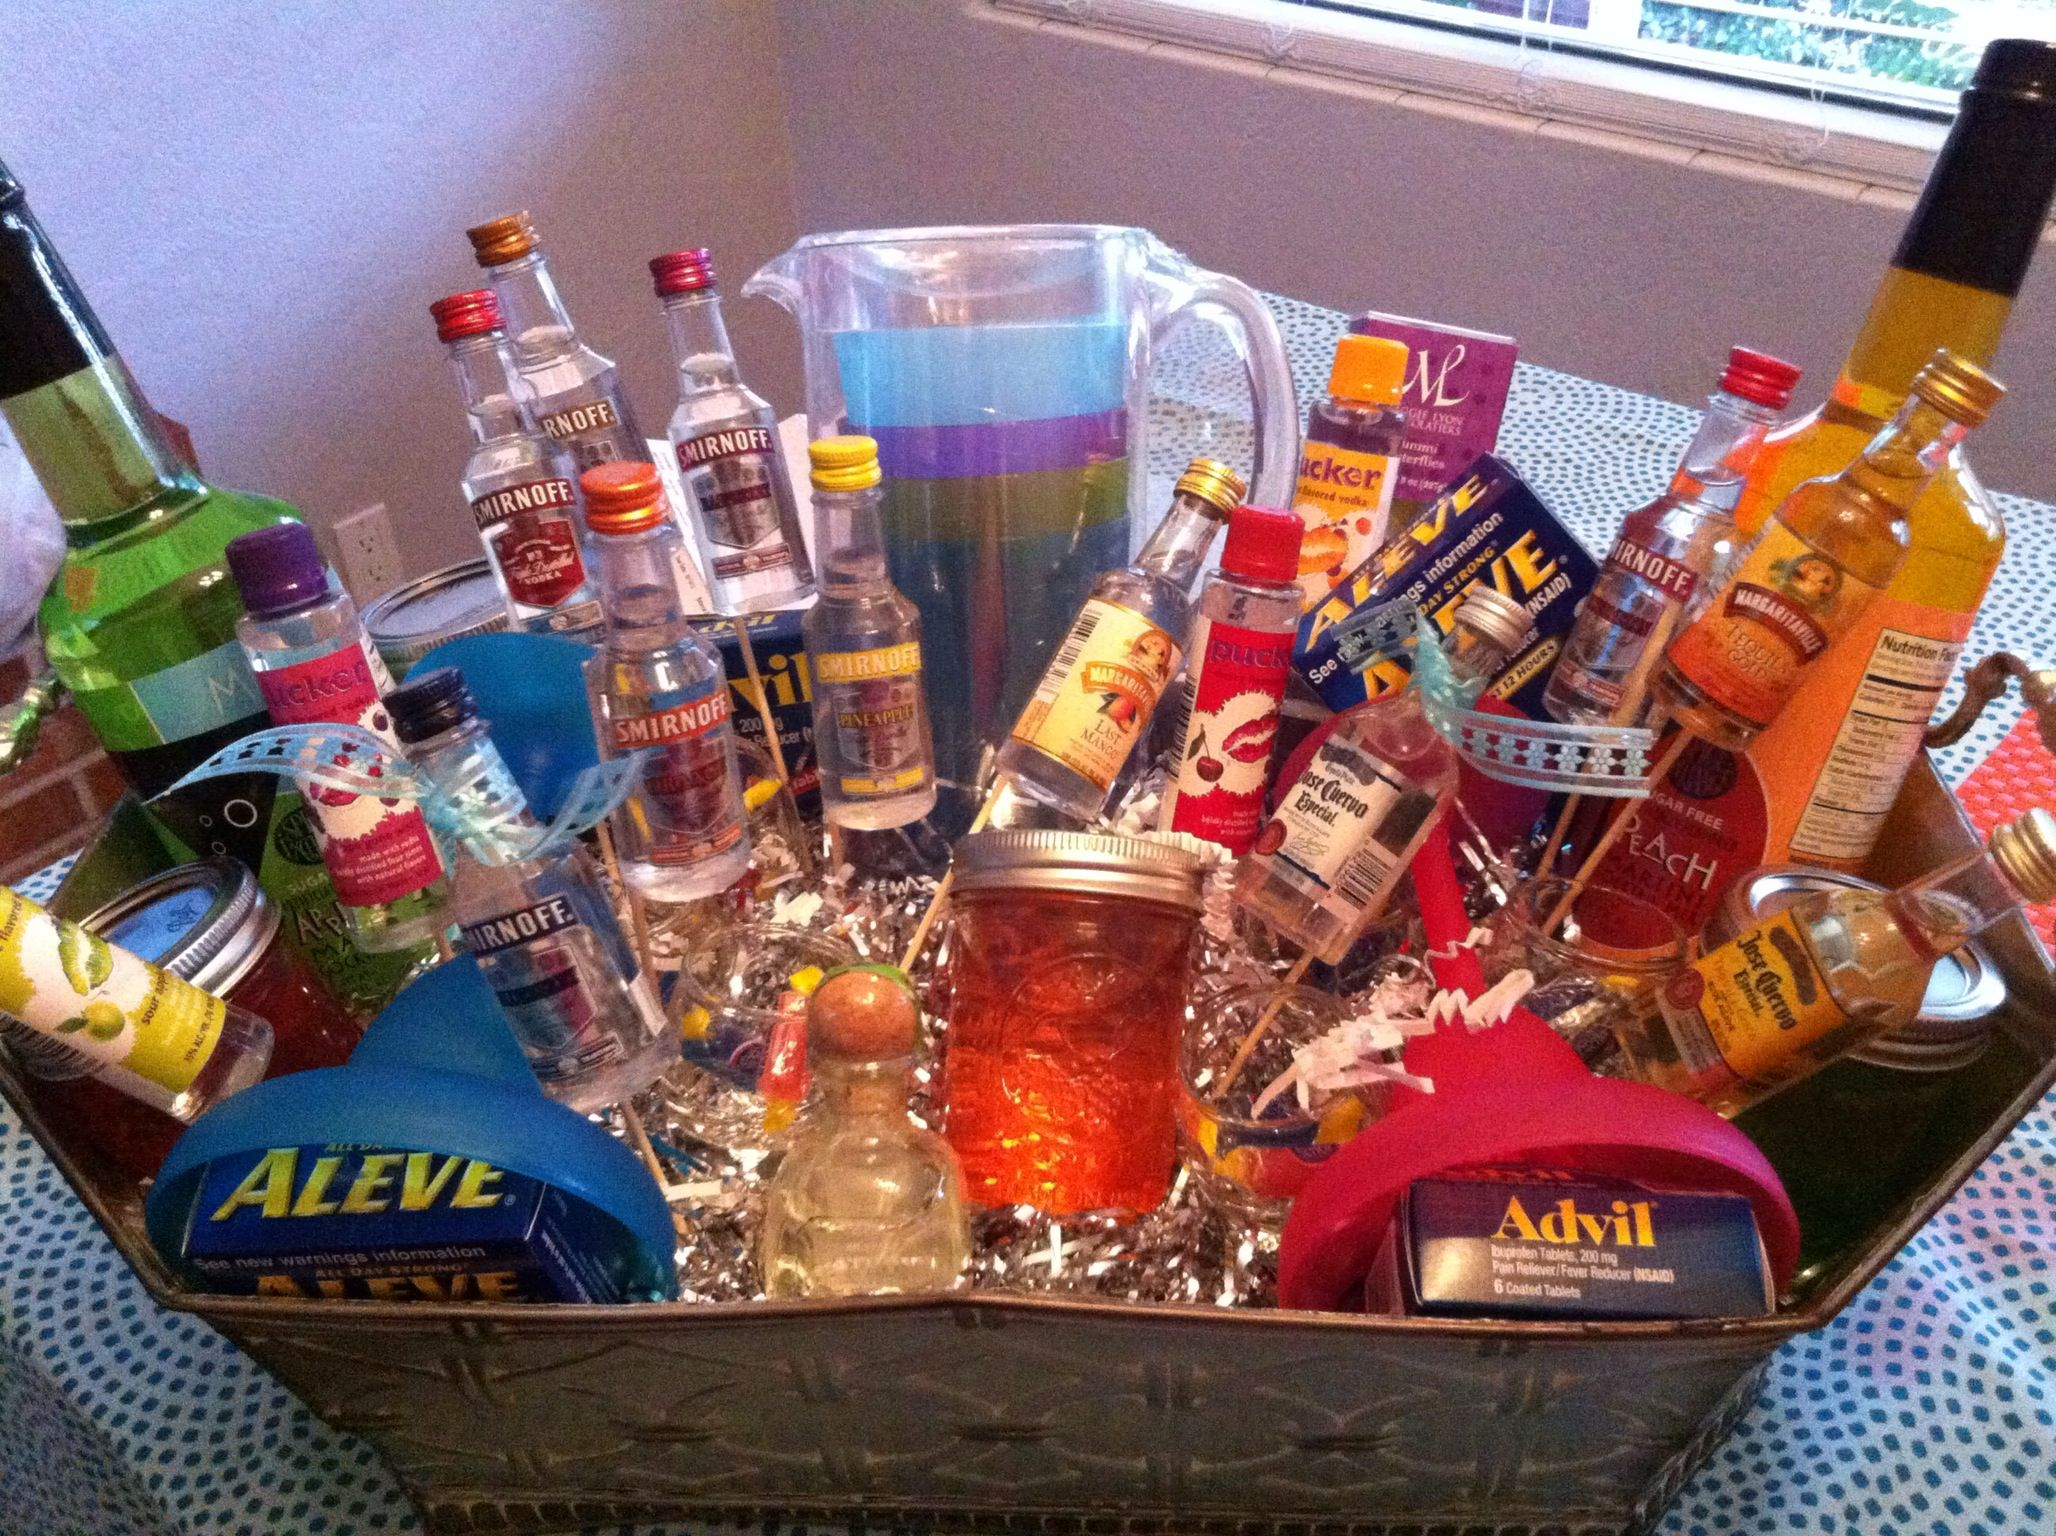 21st Birthday Basket Every Flavor Of Vodka And Tequila At The Store Small Mason Jars Filled With H Birthday Basket 21st Birthday Basket Birthday Gift Baskets